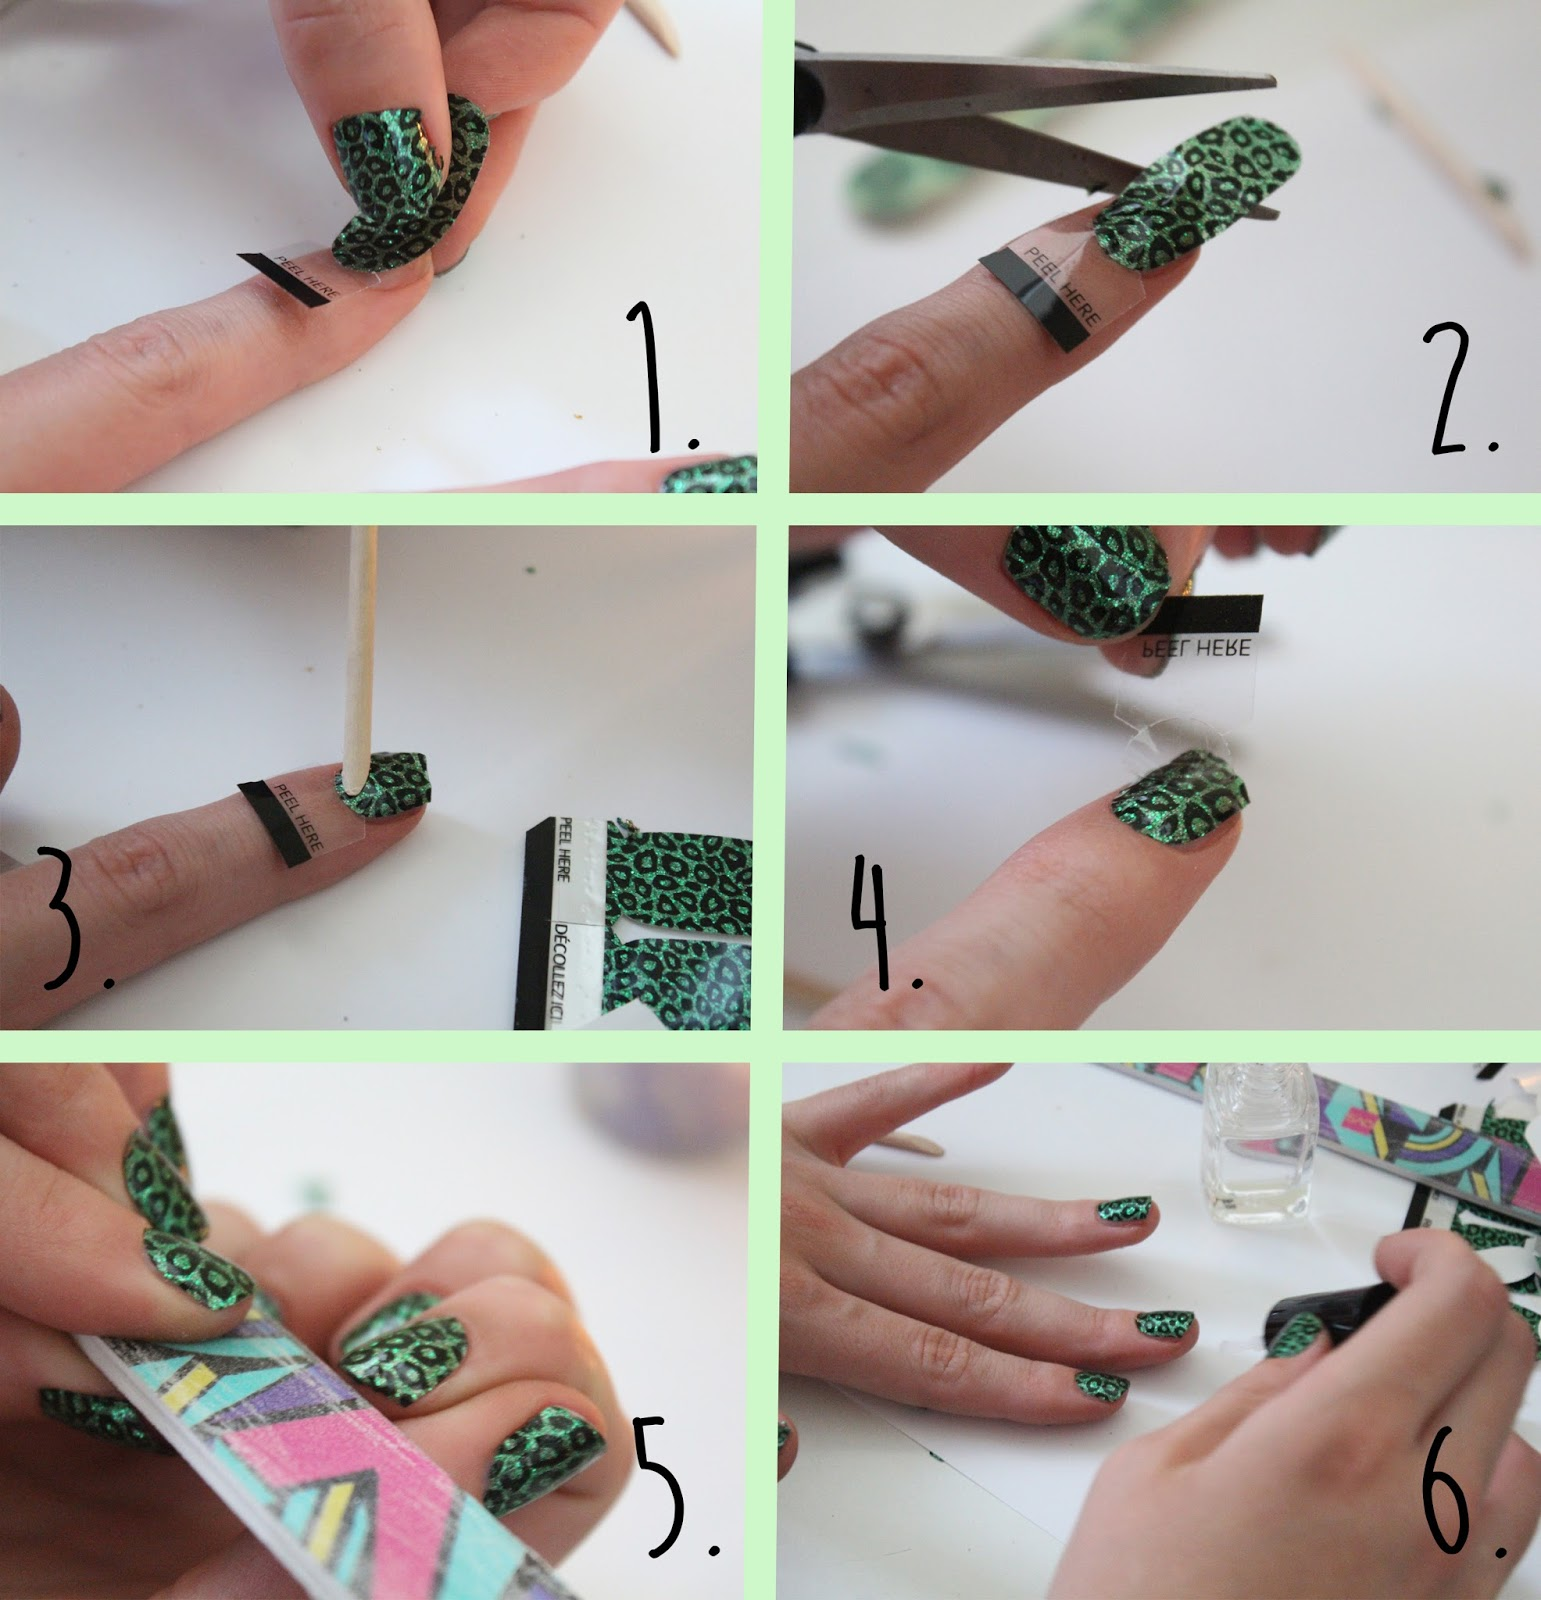 How to use Revlon Nail Stickers